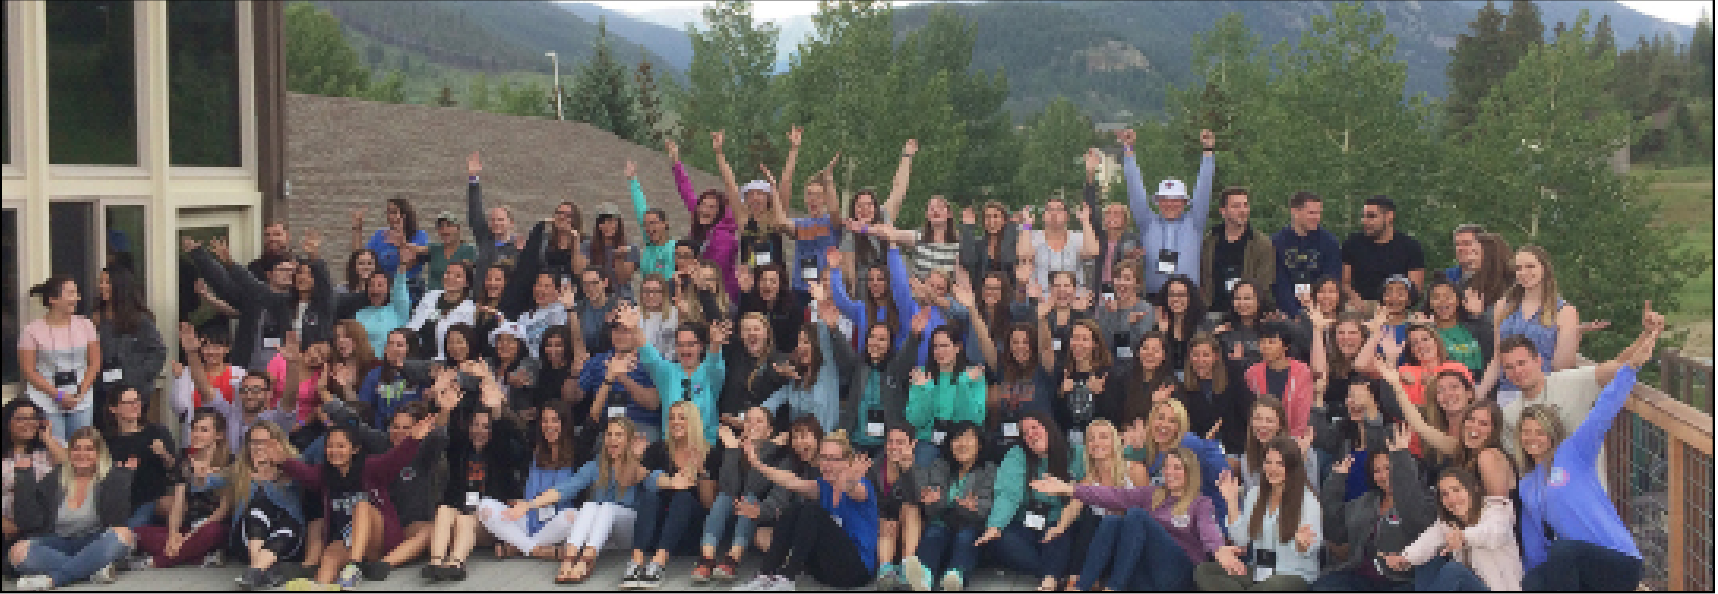 Oticon Audiology Summer Camp Celebrates 20 Years Of Fun And